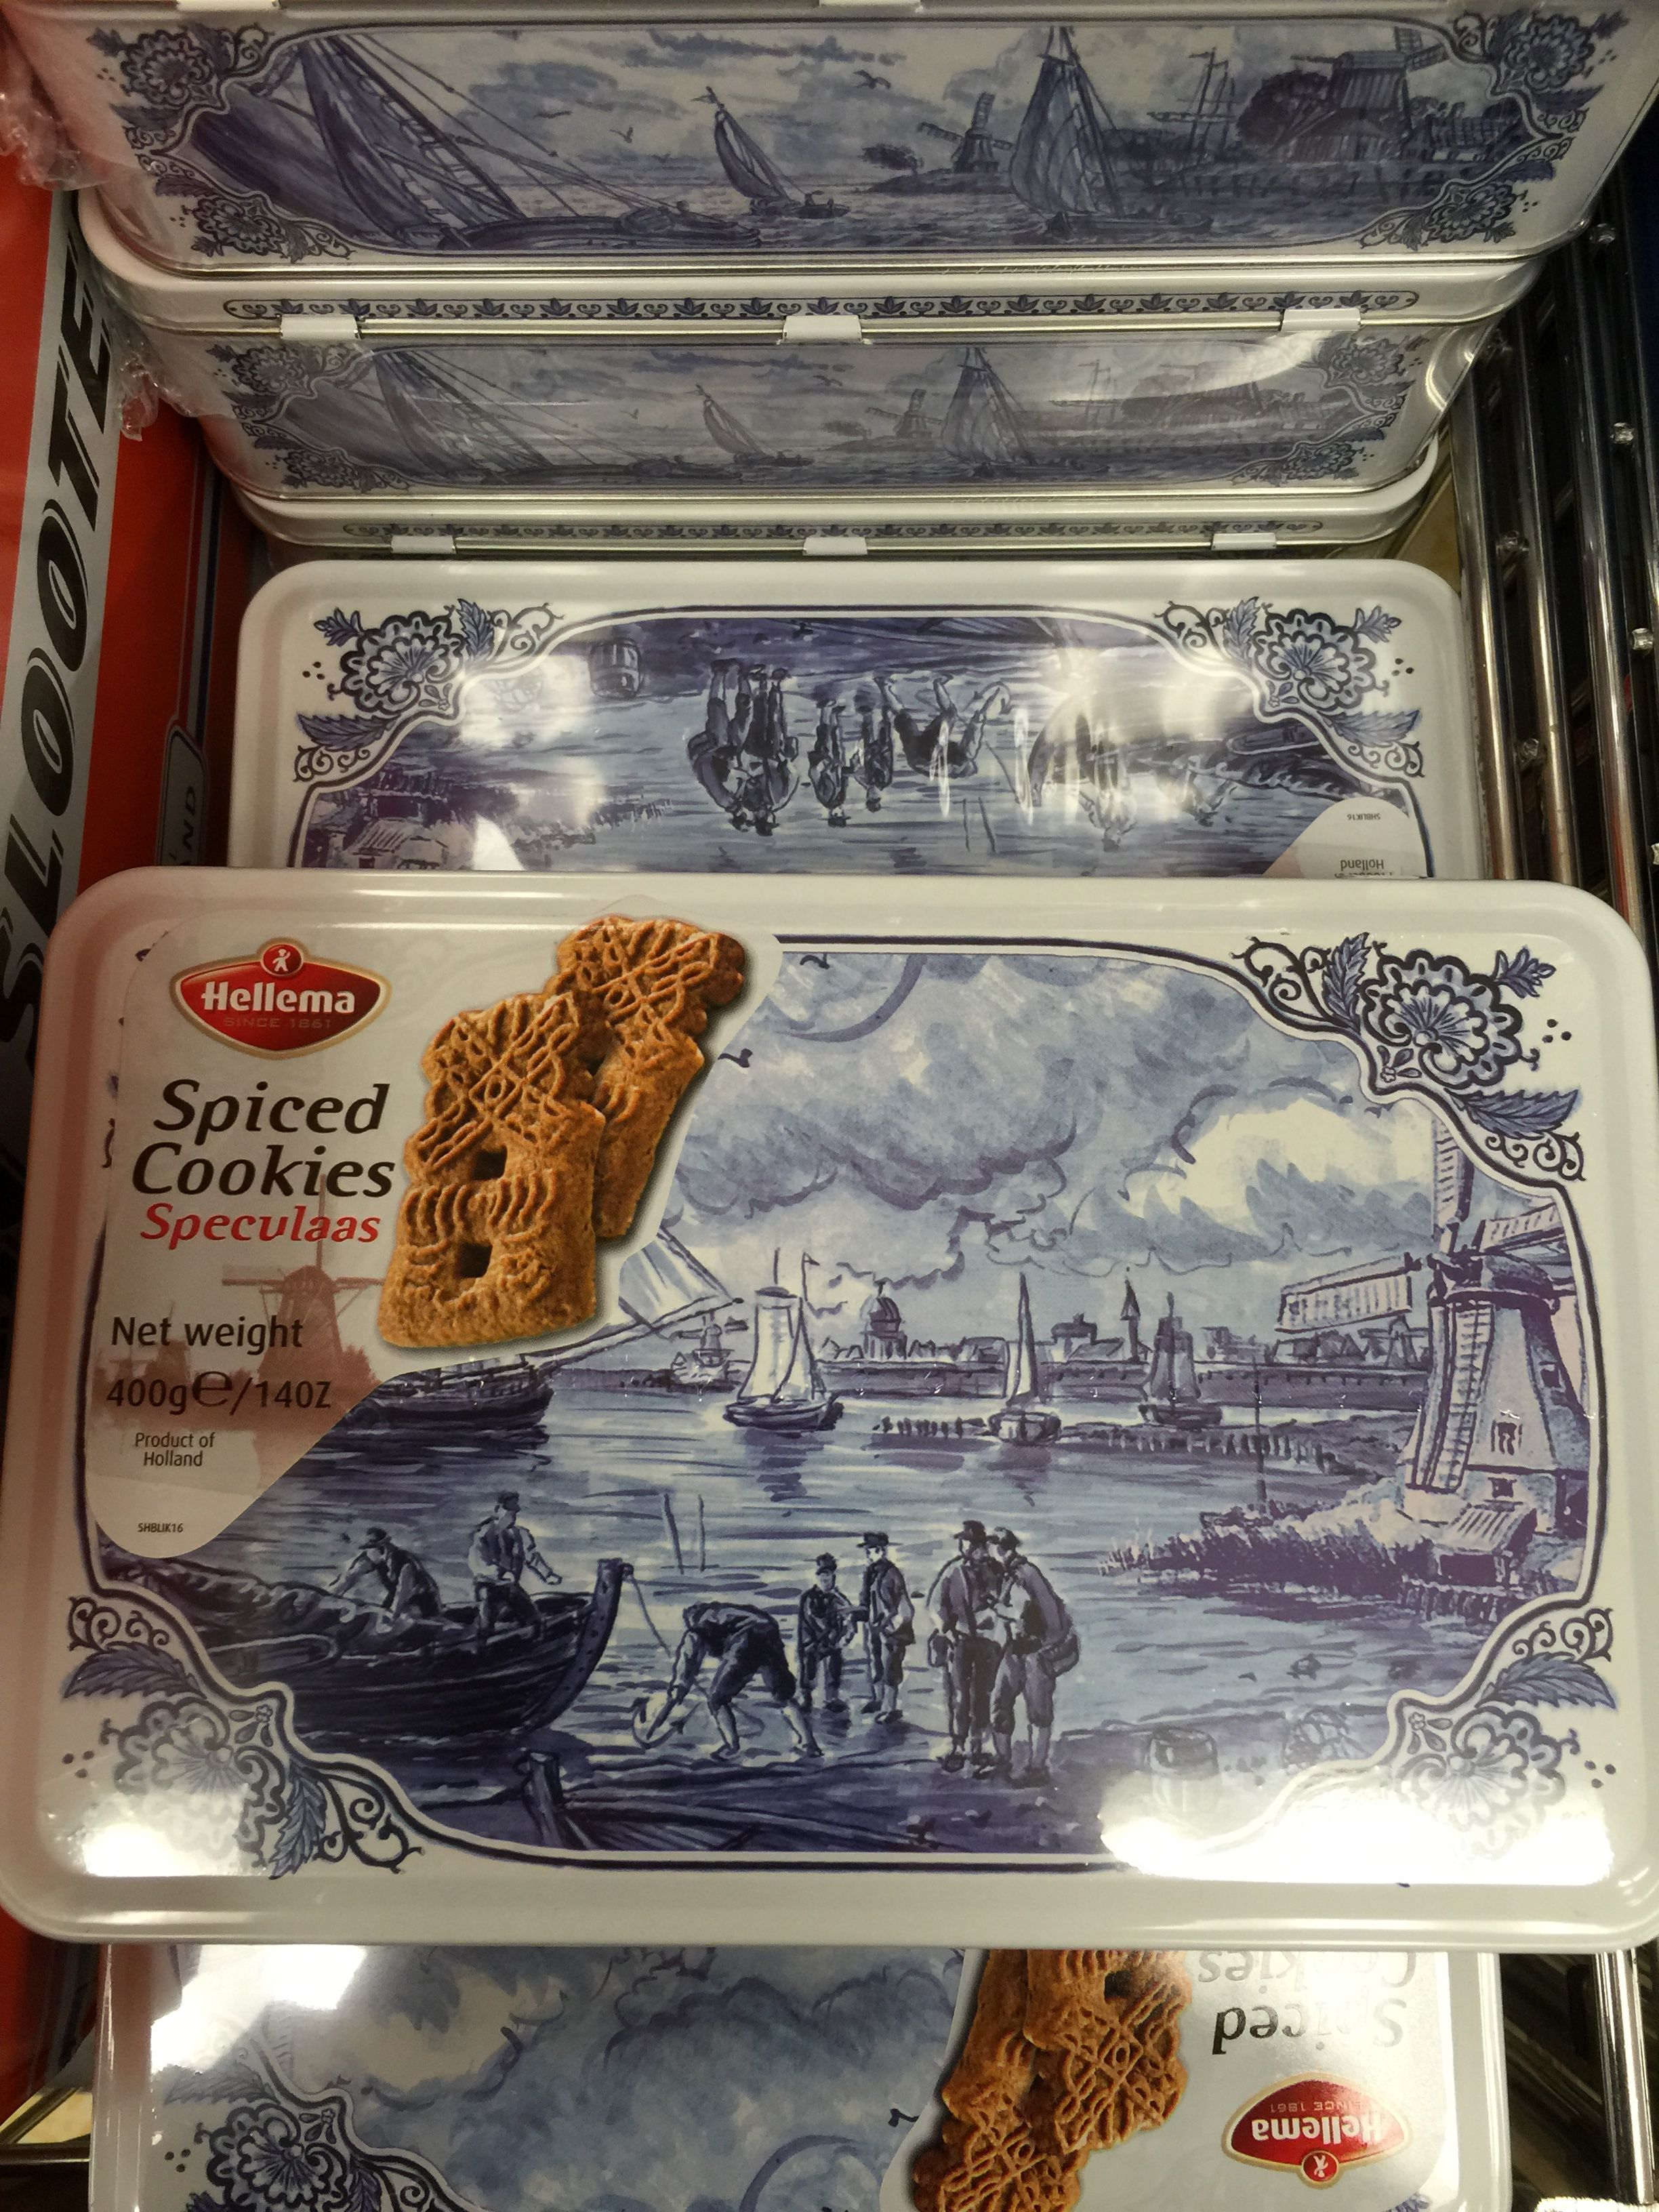 Hellema Speculaas Dutch Spiced Cookies Tin From Aldi Tin